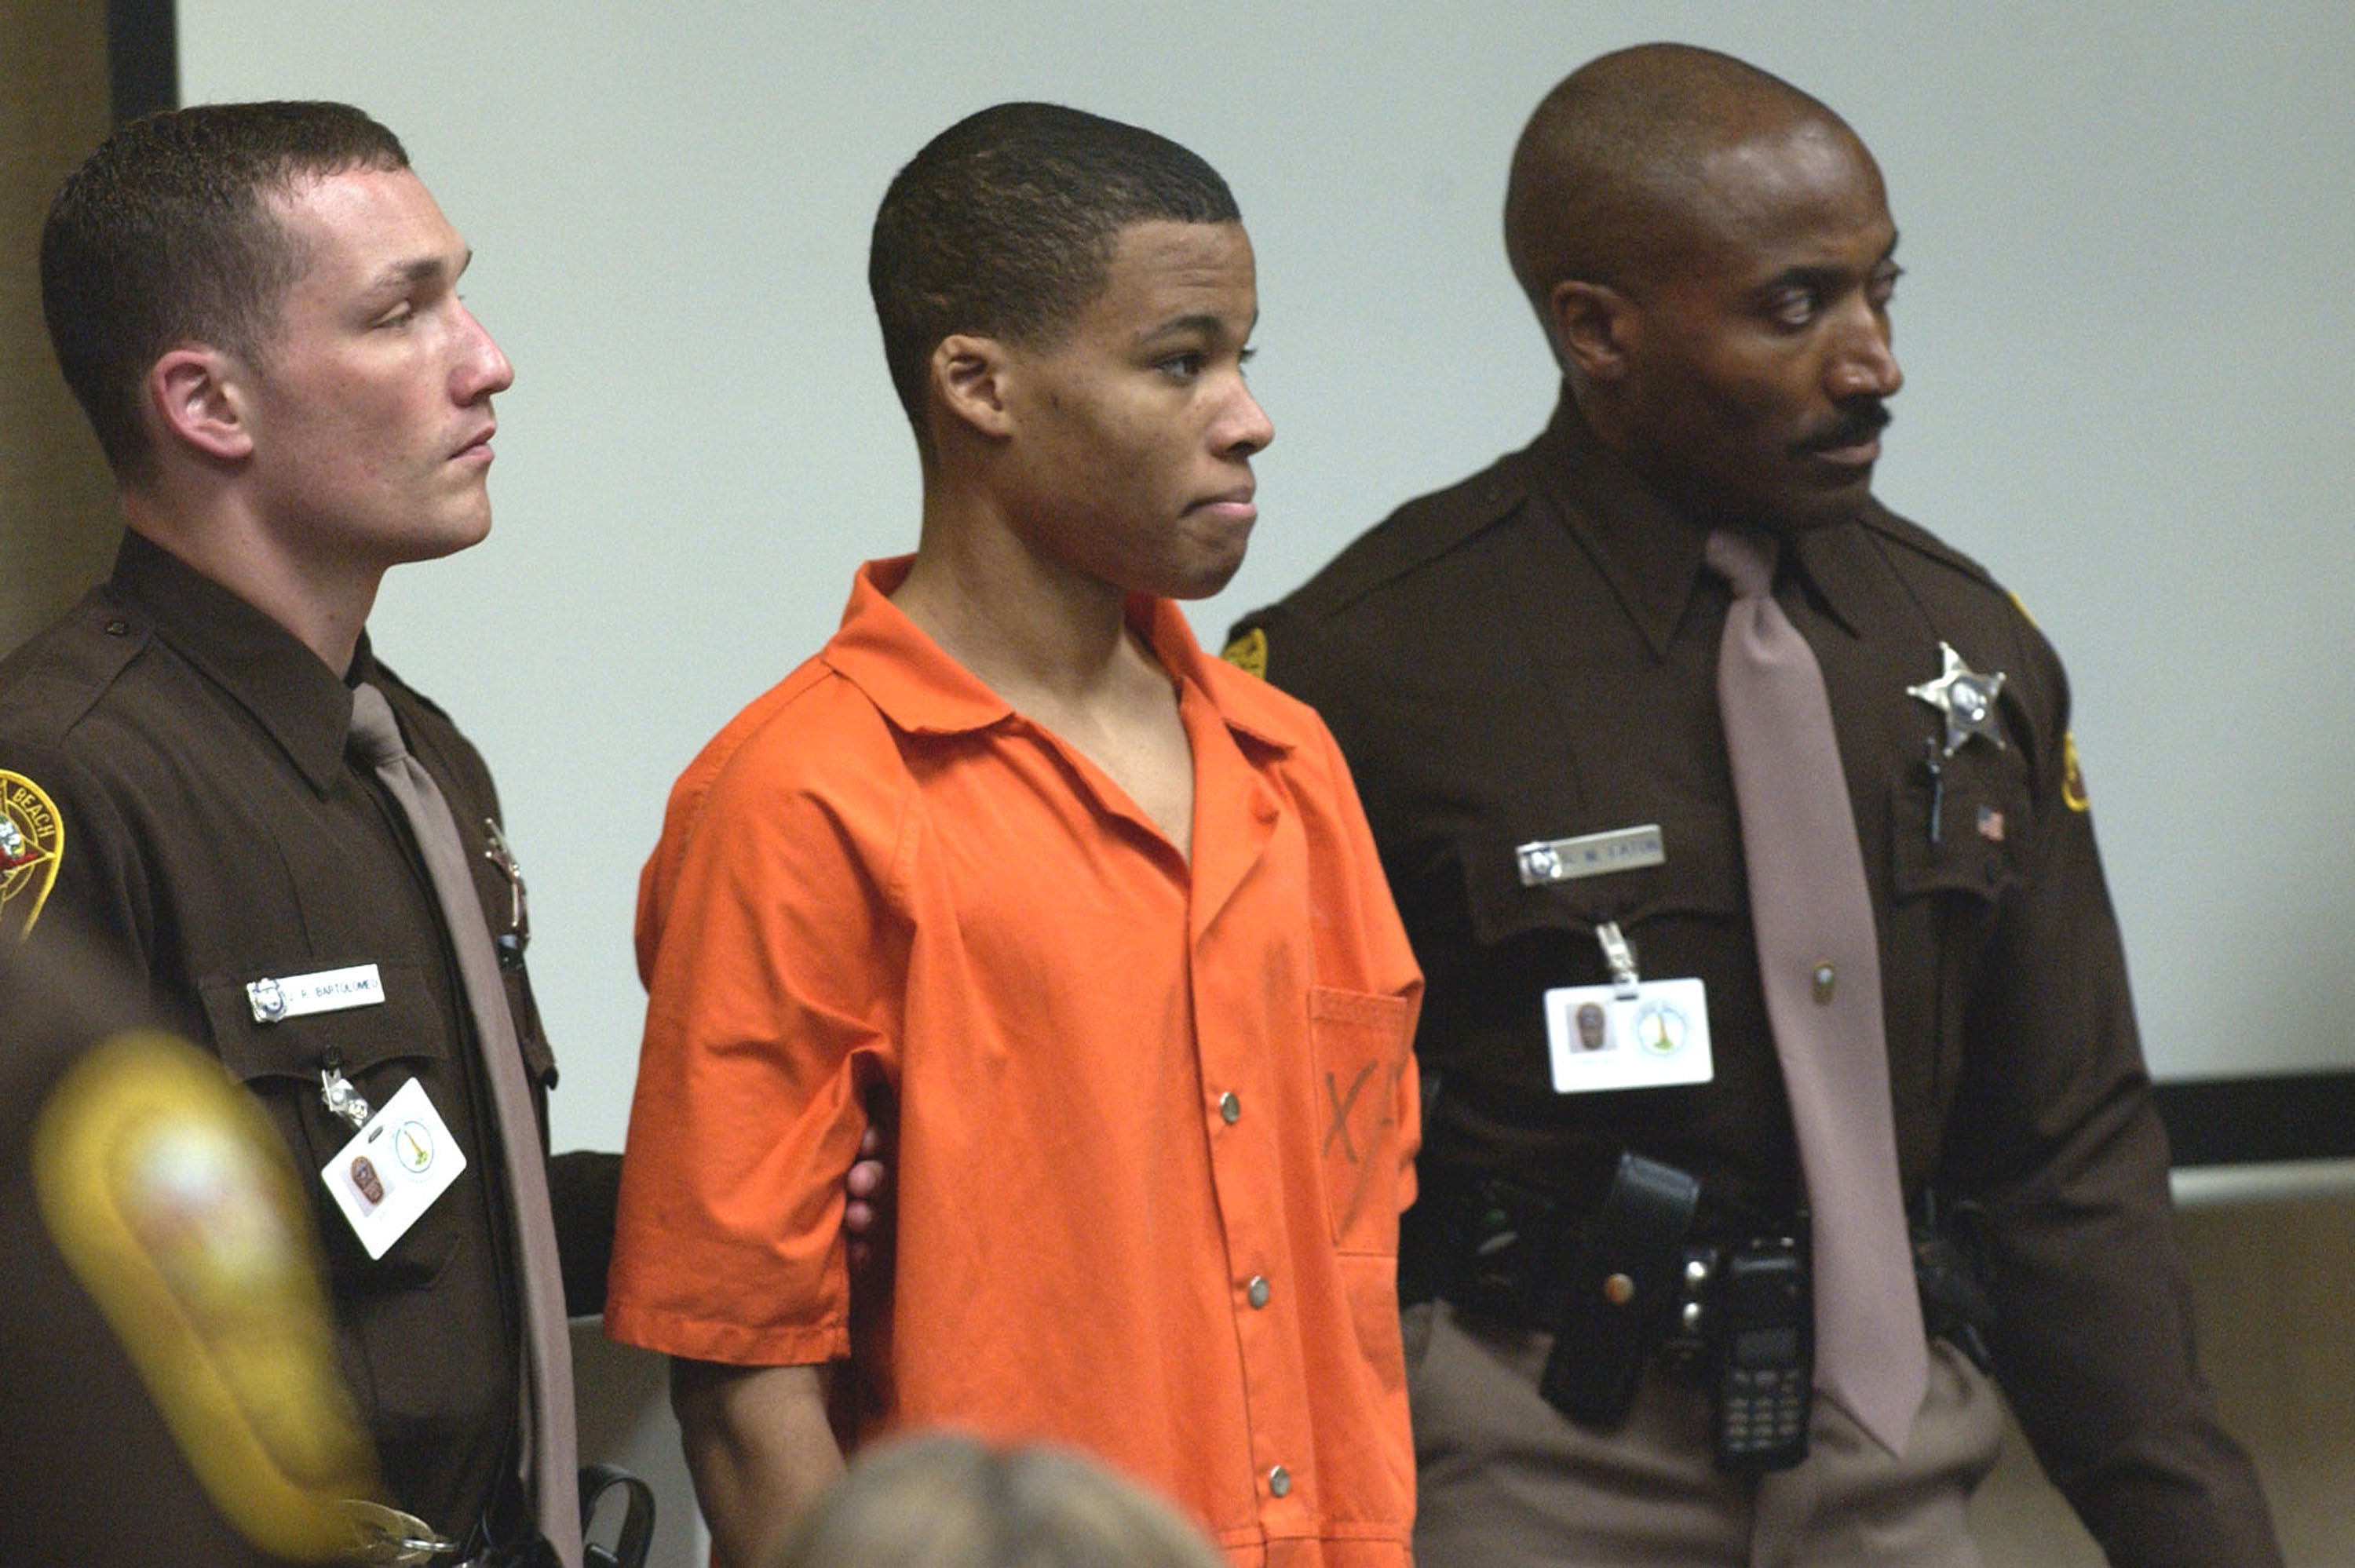 FILE PHOTO : 18-year old sniper suspect Lee Boyd Malvo is surrounded by deputies as he is brought into court to be identified by a witness during the trial of sniper suspect John Allen Muhammad at the Virginia Beach Circuit Court in Virginia Beach, Virginia, U.S., October 22, 2003. REUTERSDavis Turner/POOL/File Photo